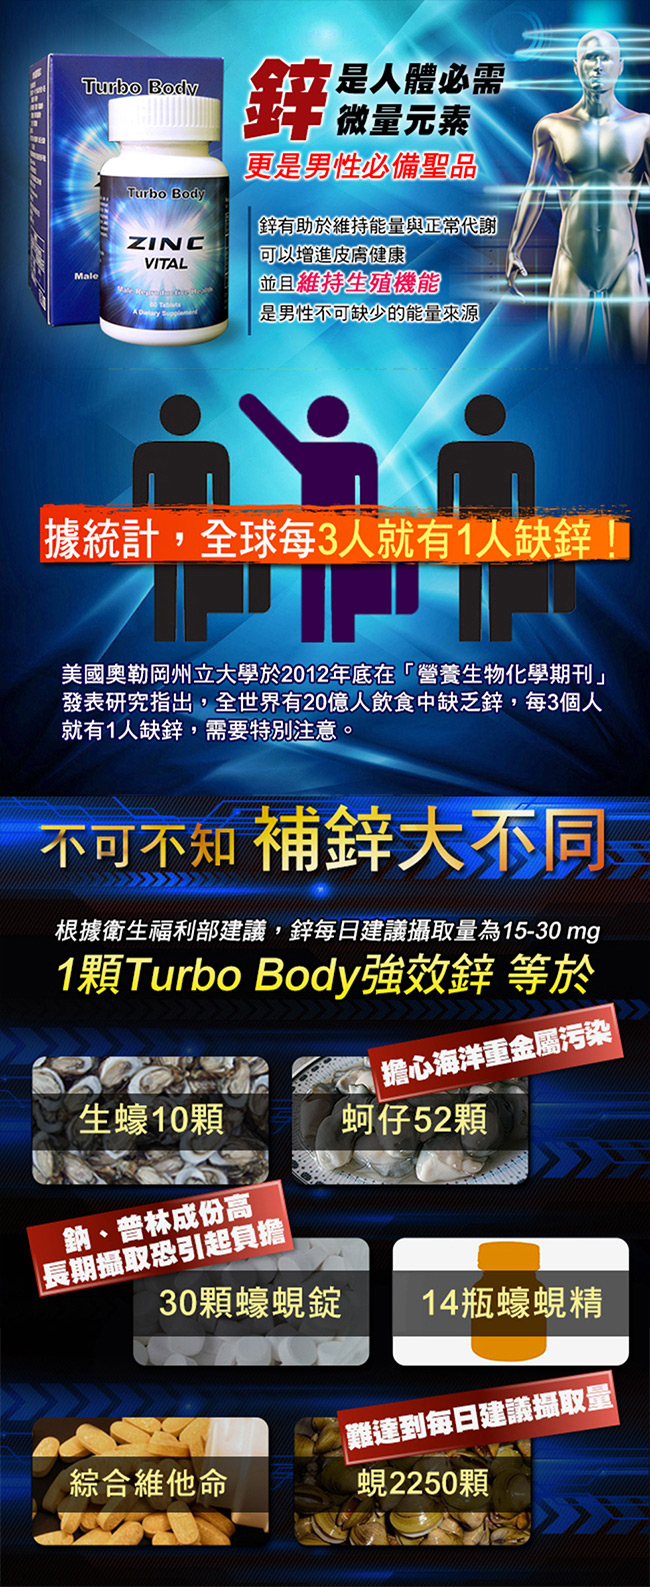 Turbo Body 強效鋅